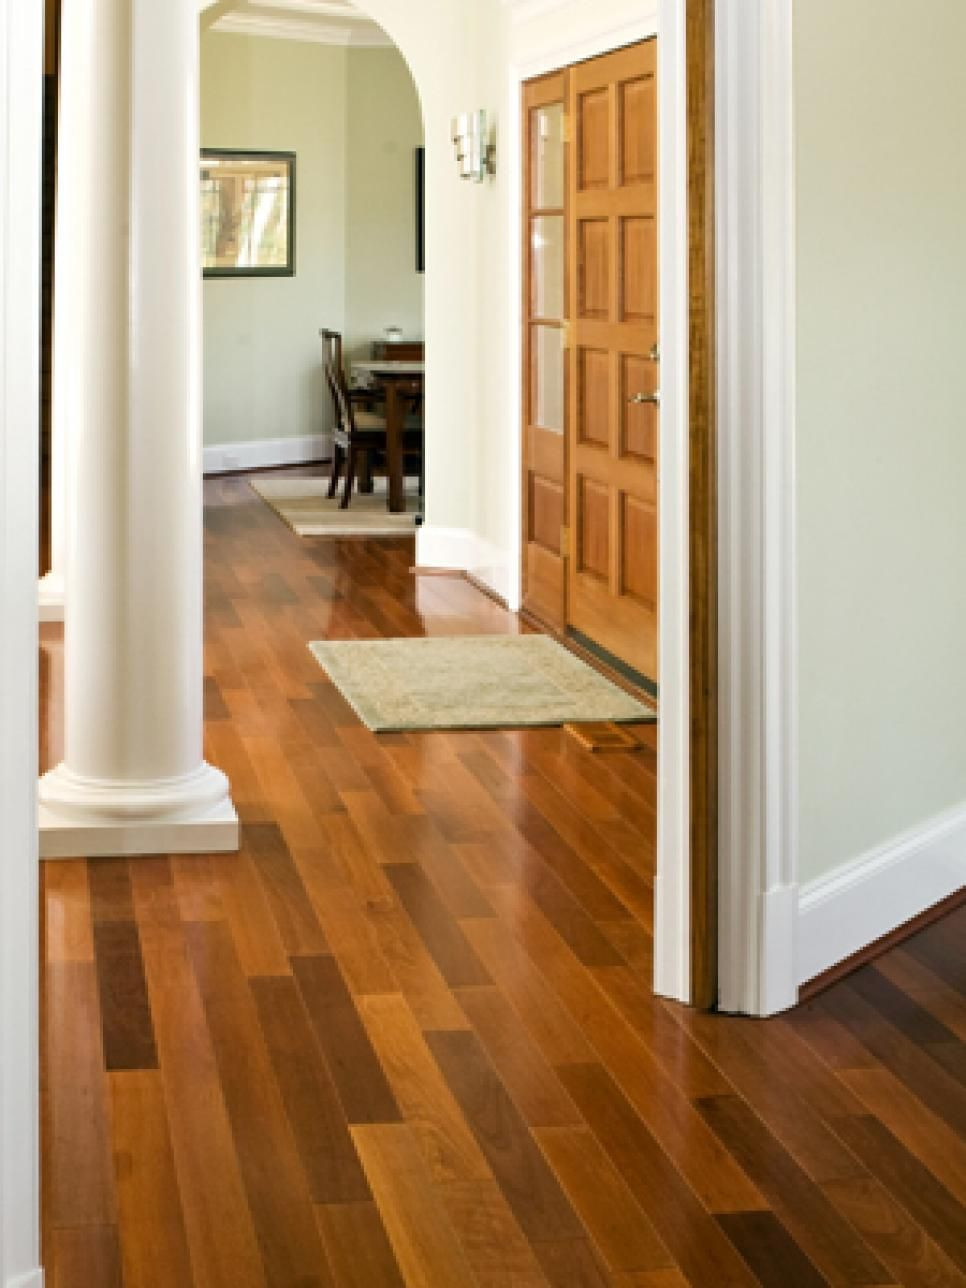 hardwood floor stain samples of 10 stunning hardwood flooring options interior design styles and inside 10 stunning hardwood flooring options interior design styles and color schemes for home decorating